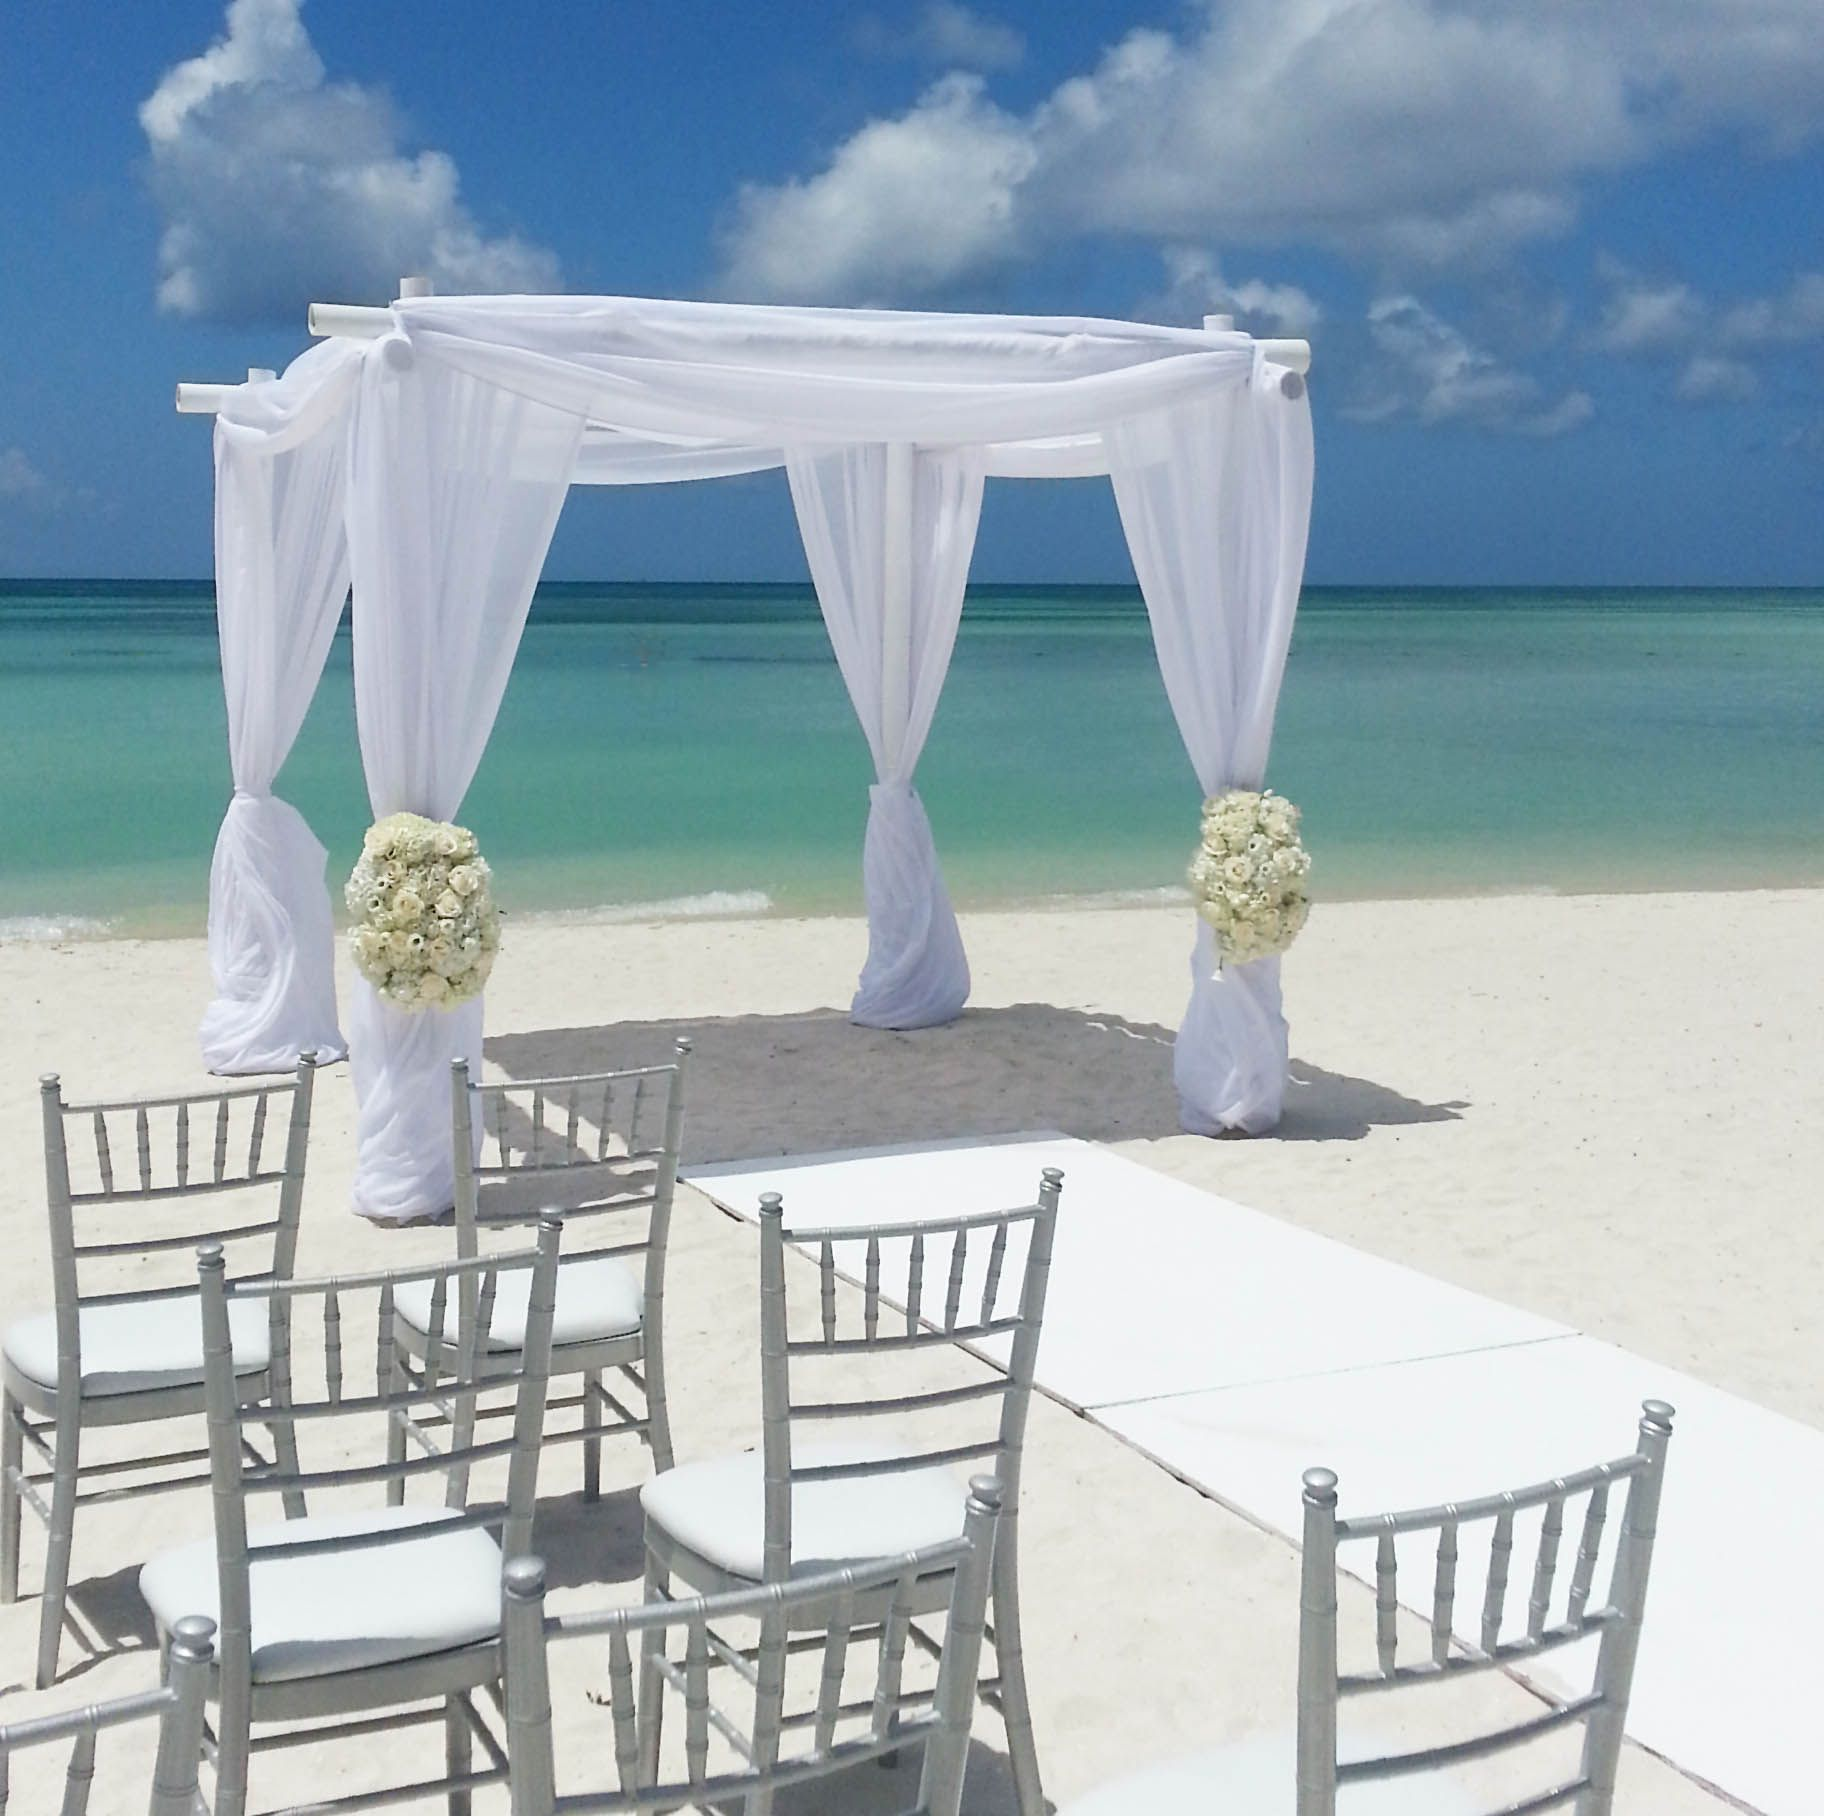 Beach Wedding Flower Ideas: The Ritz-Carlton Aruba Beach Wedding Decoration #flowers